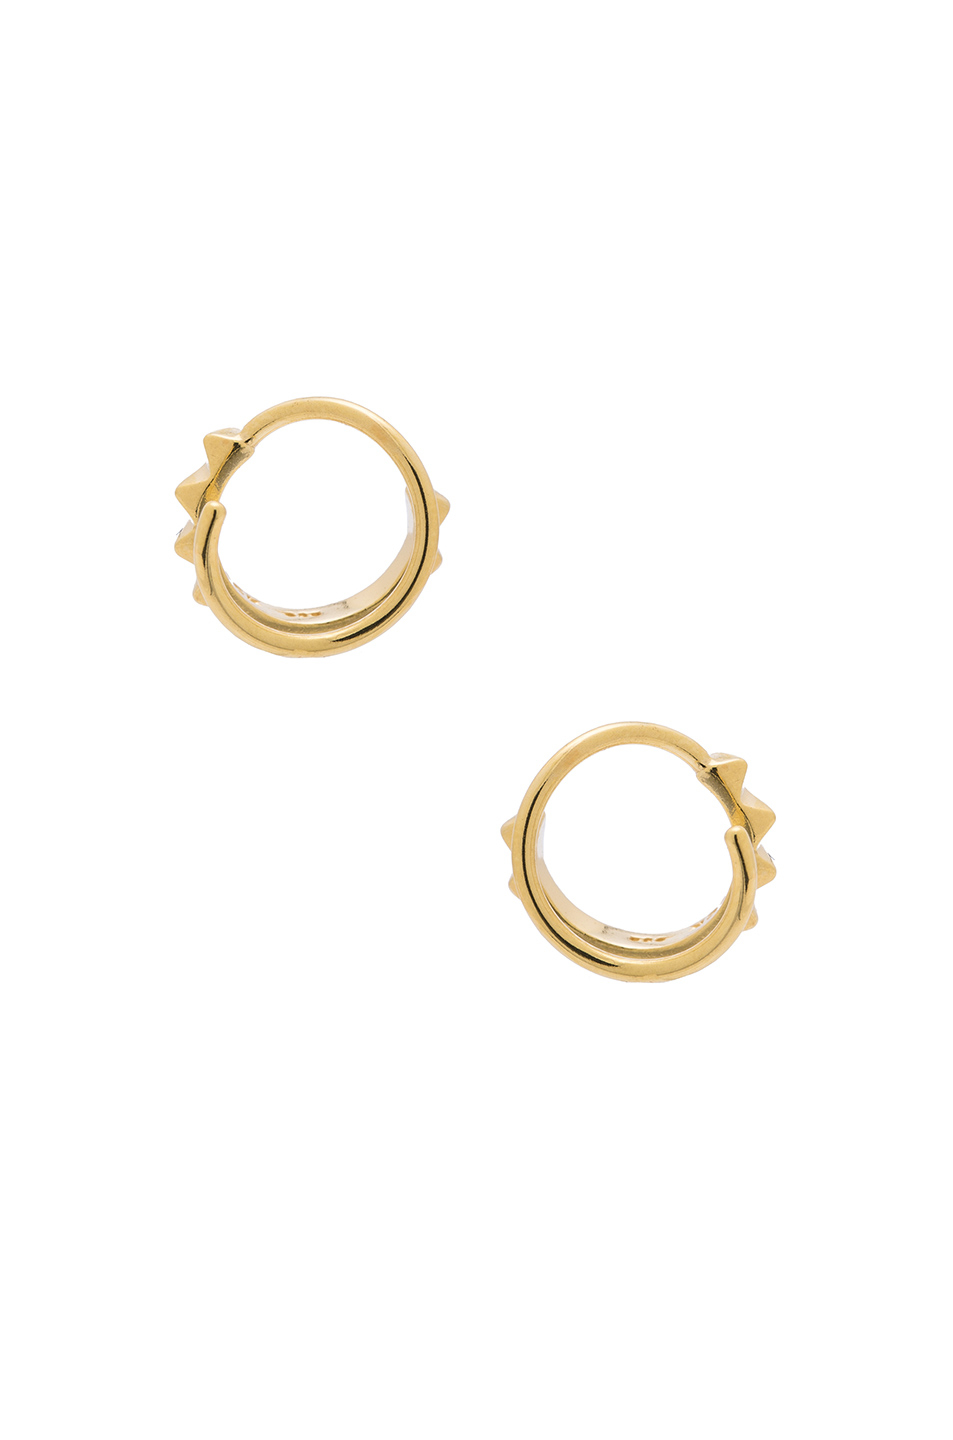 Maria Black 14 Karat Klaxon Twirl Earrings in Metallics Po1DPndPt0